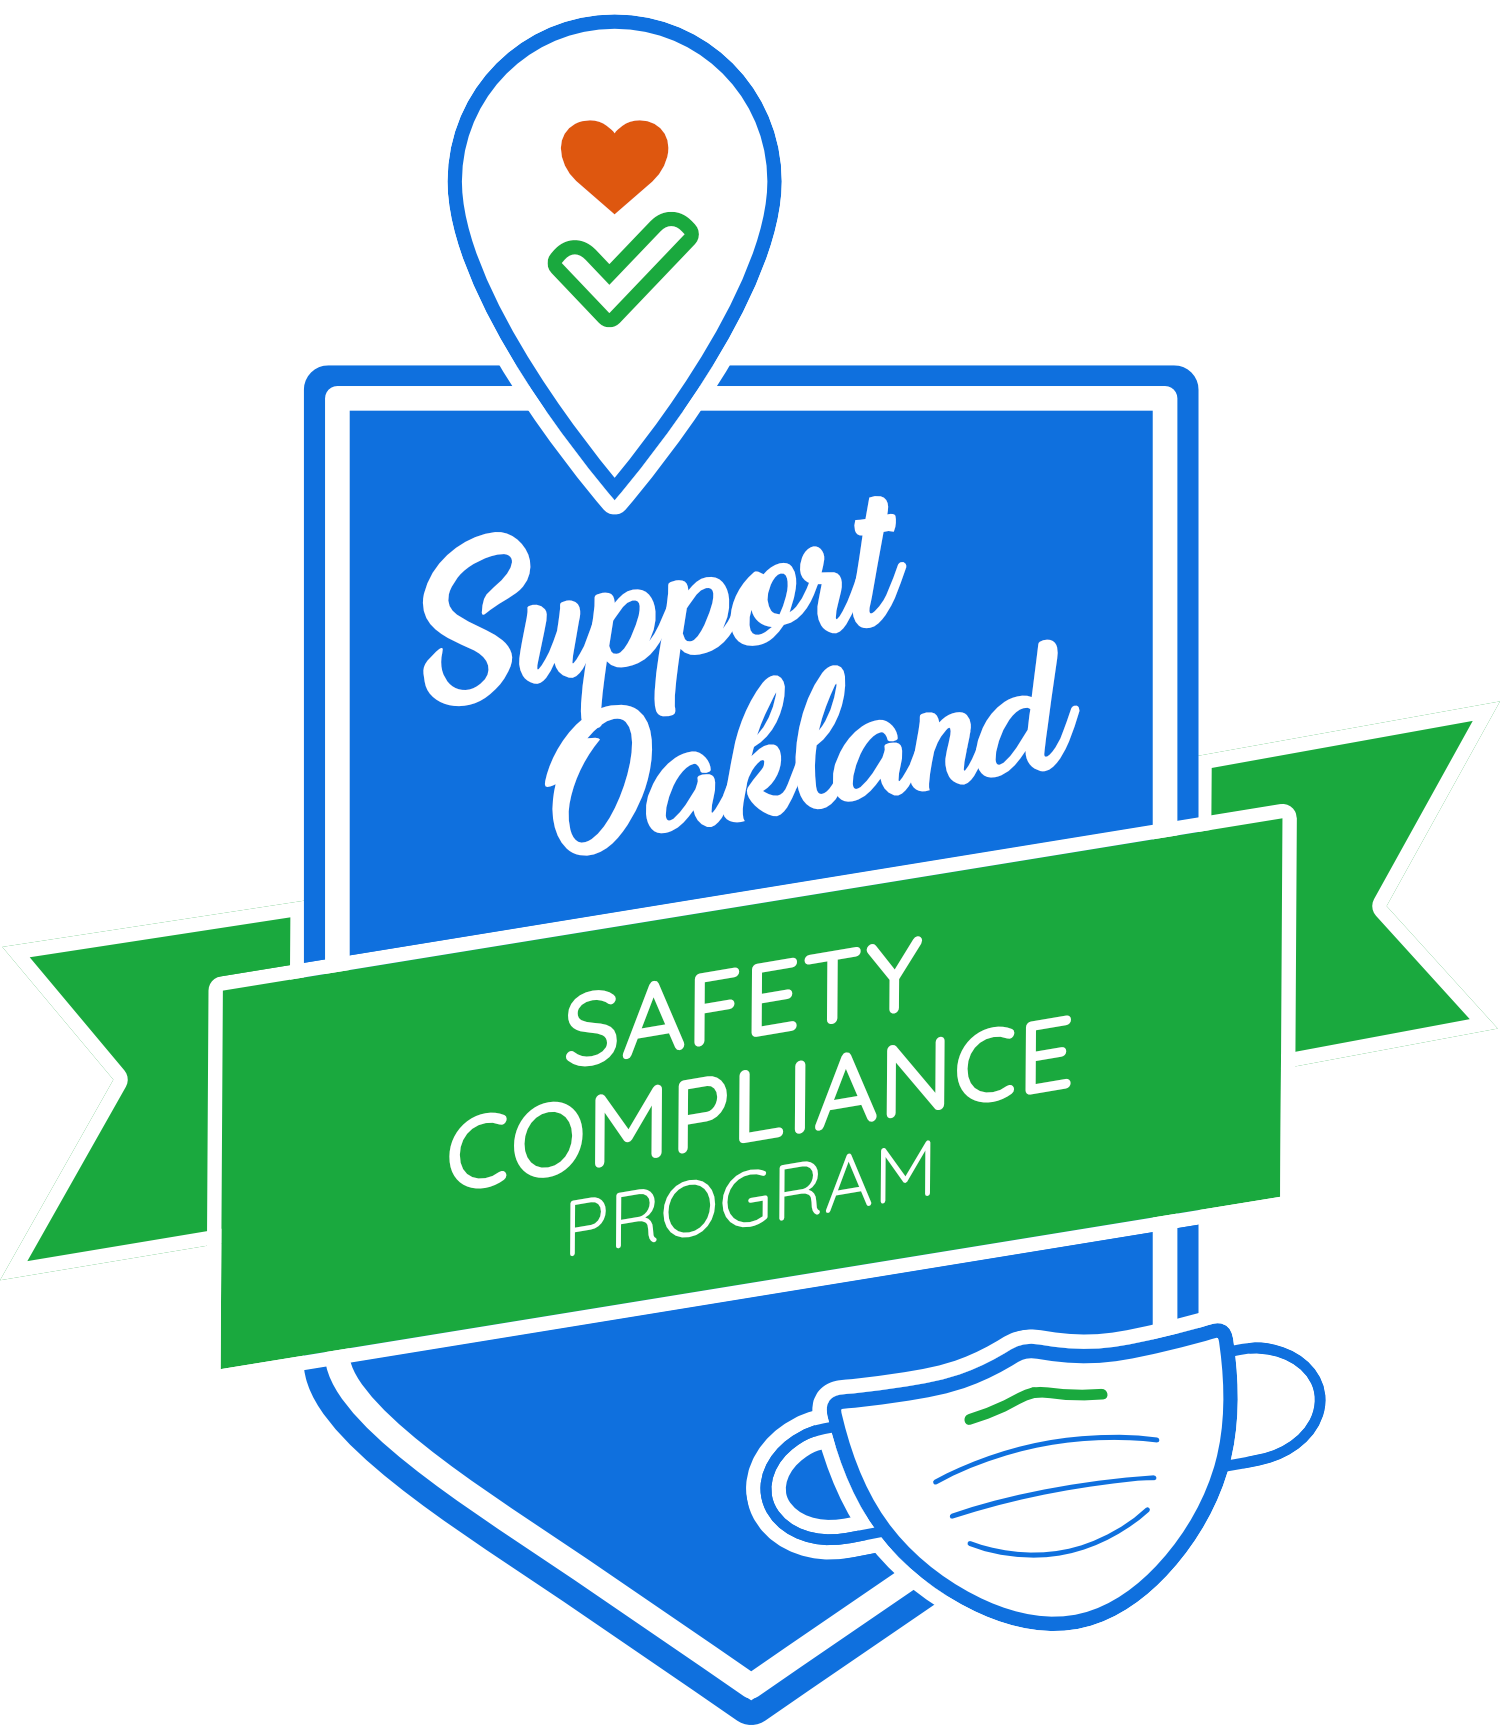 Support Oakland Safety Compliance Program